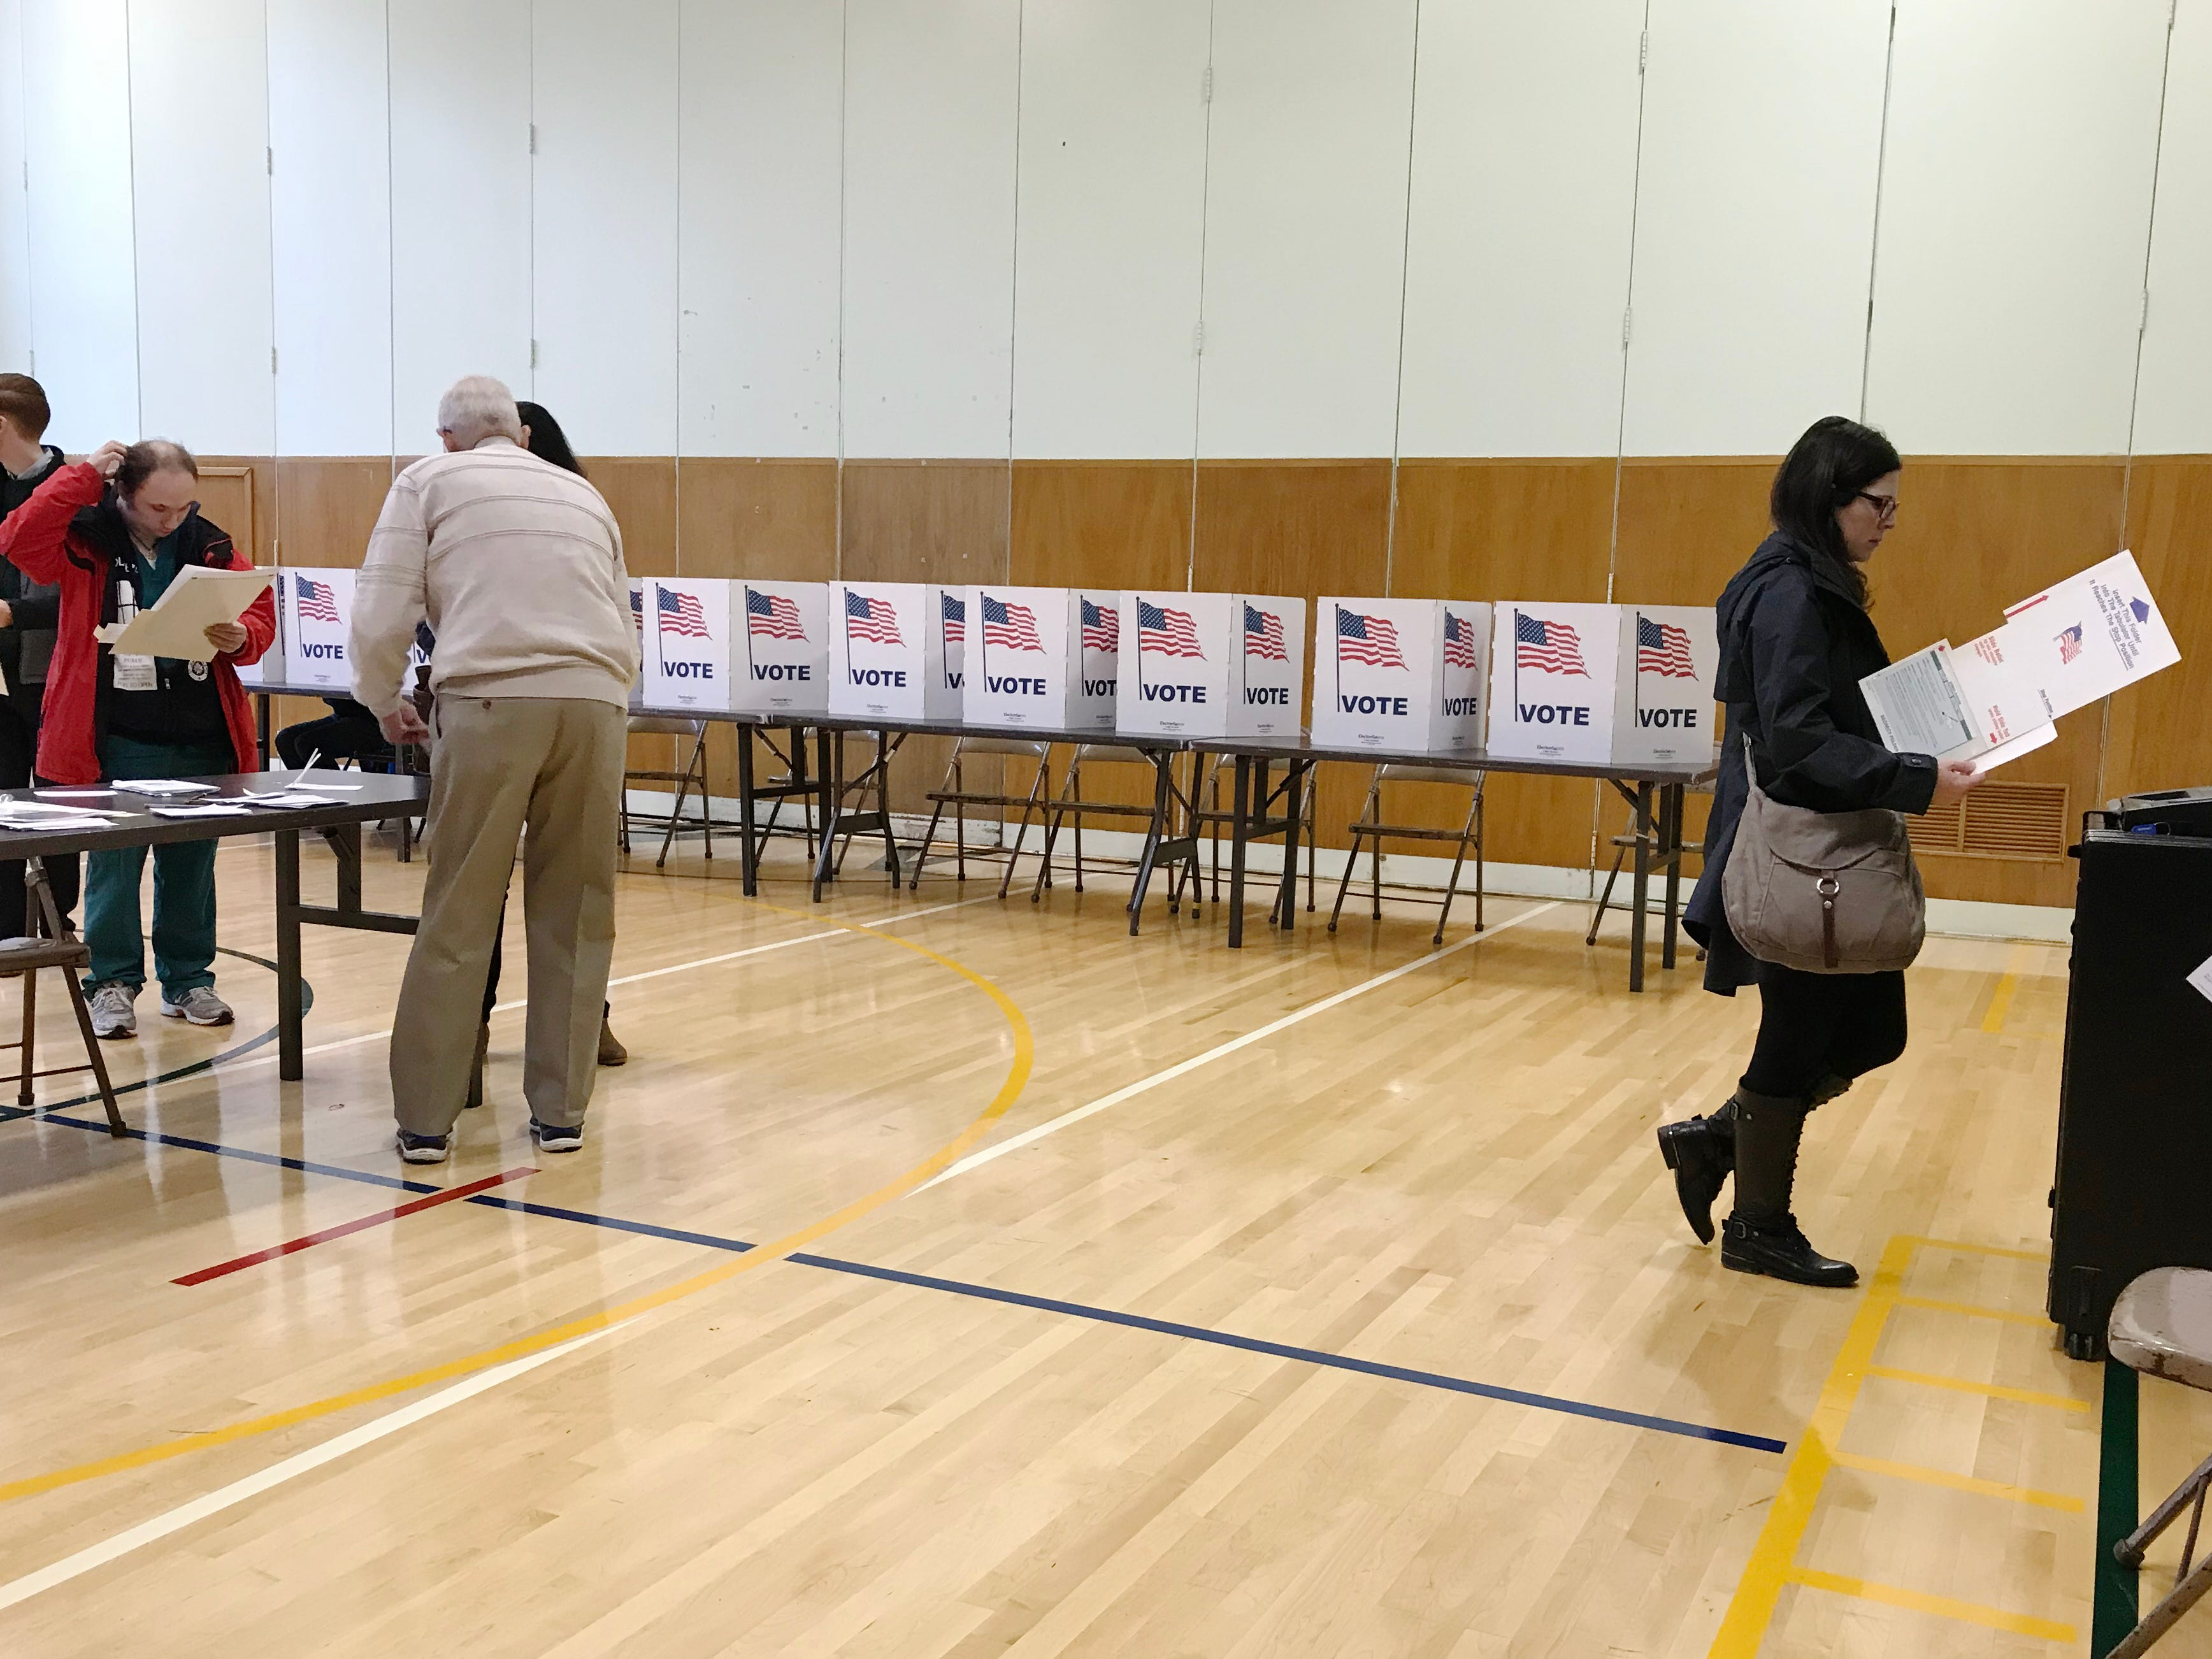 Voters cast their ballots in the gymnasium at Monteith Elementary School on midterm election day, Tuesday, Nov. 6, 2018 in Grosse Pointe Woods, Michigan.